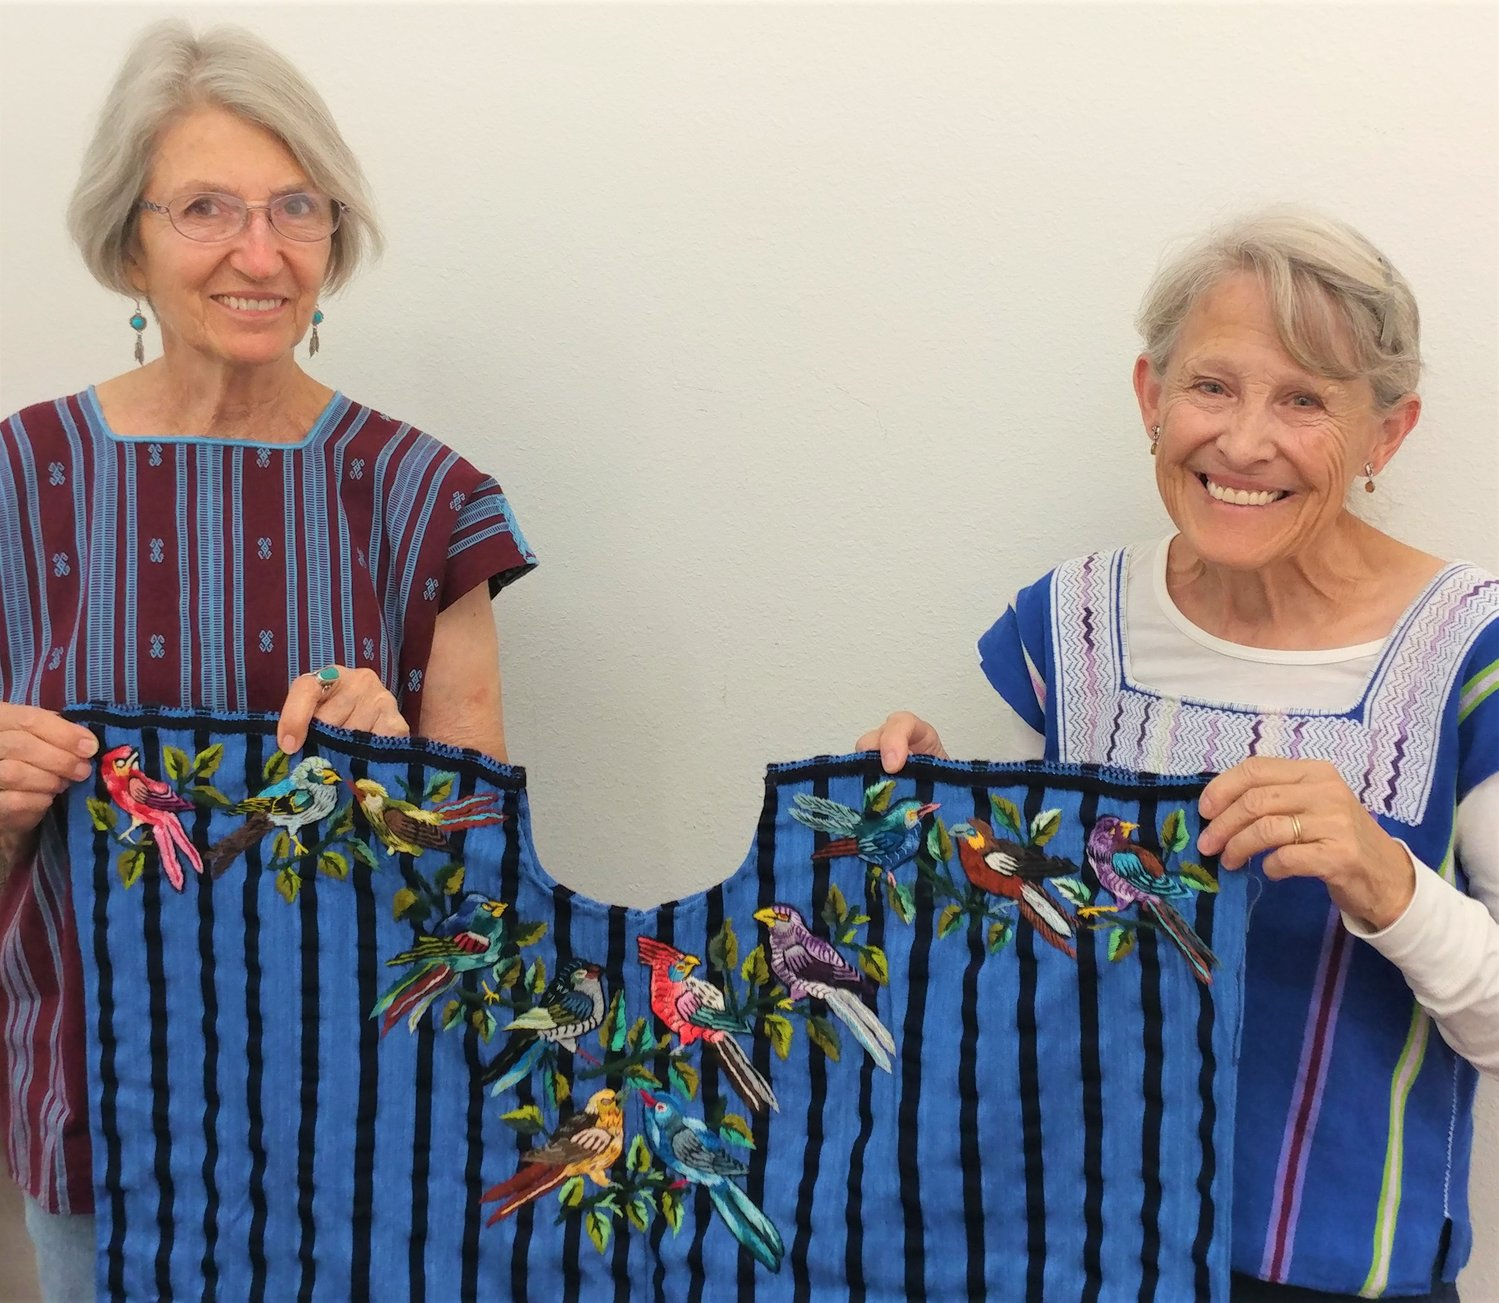 Textile Sale to Benefit Maya Youth co-coordinators Janet Darrow and Christine Eber are wearing and holding Maya textiles.